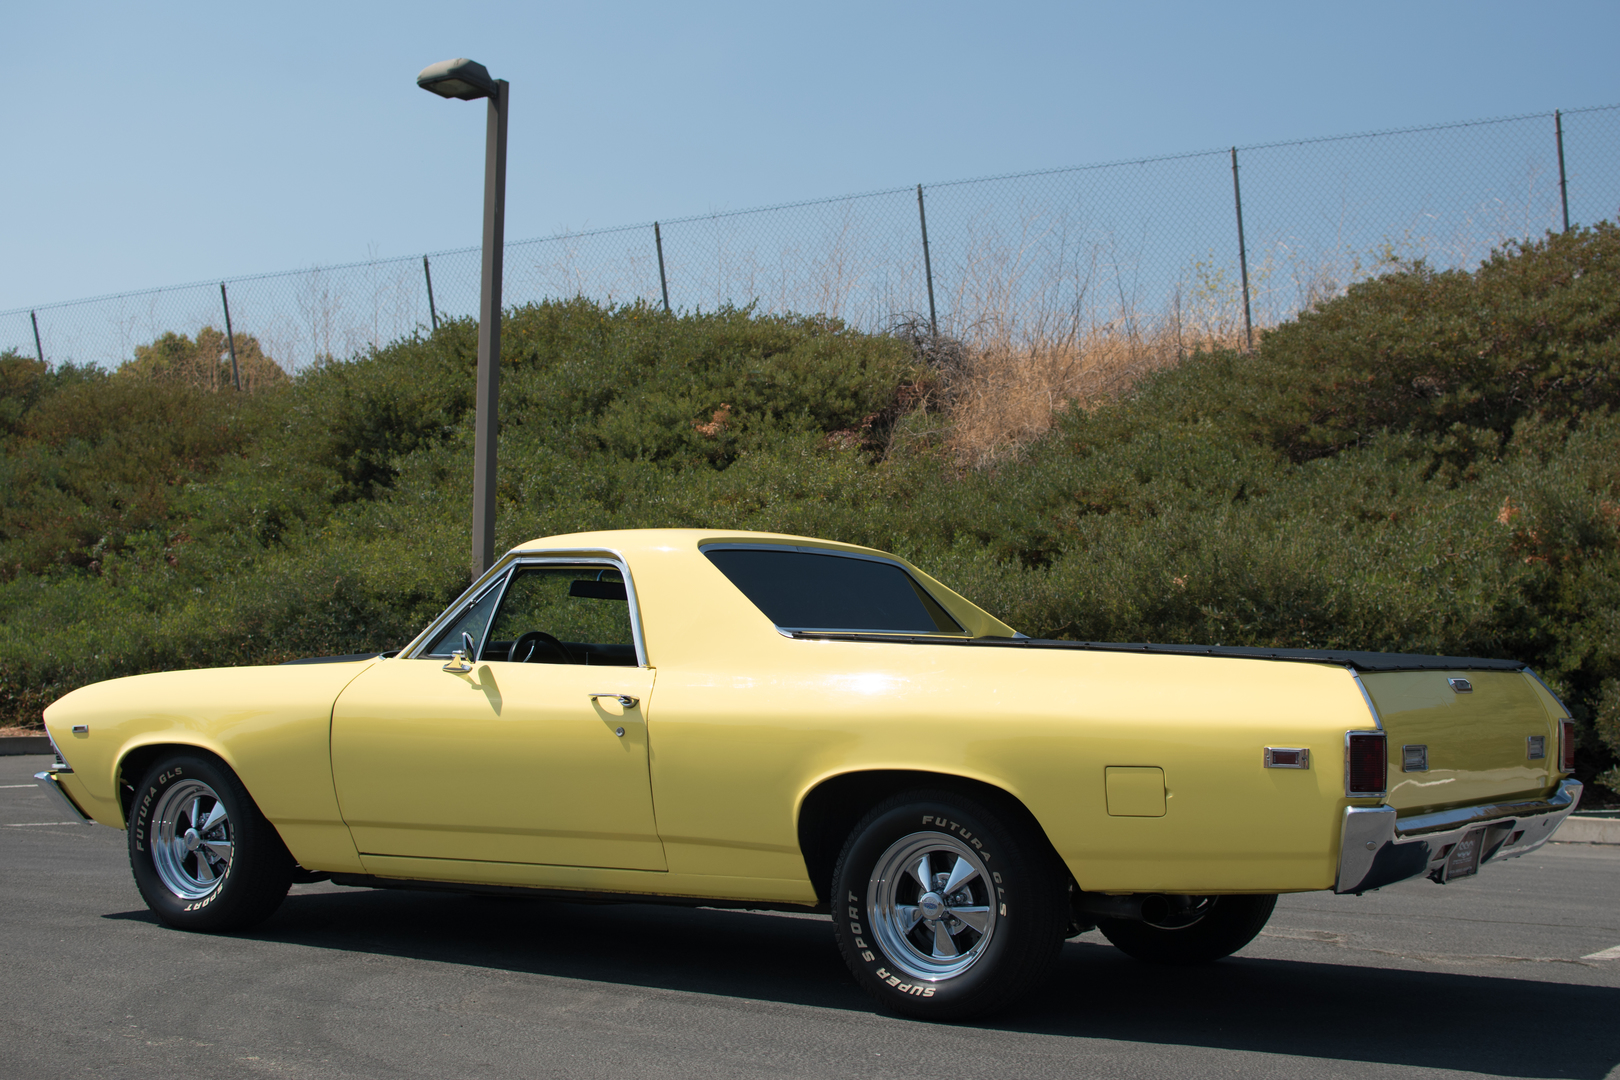 Classic Cars For Sale In Fairfield Ca